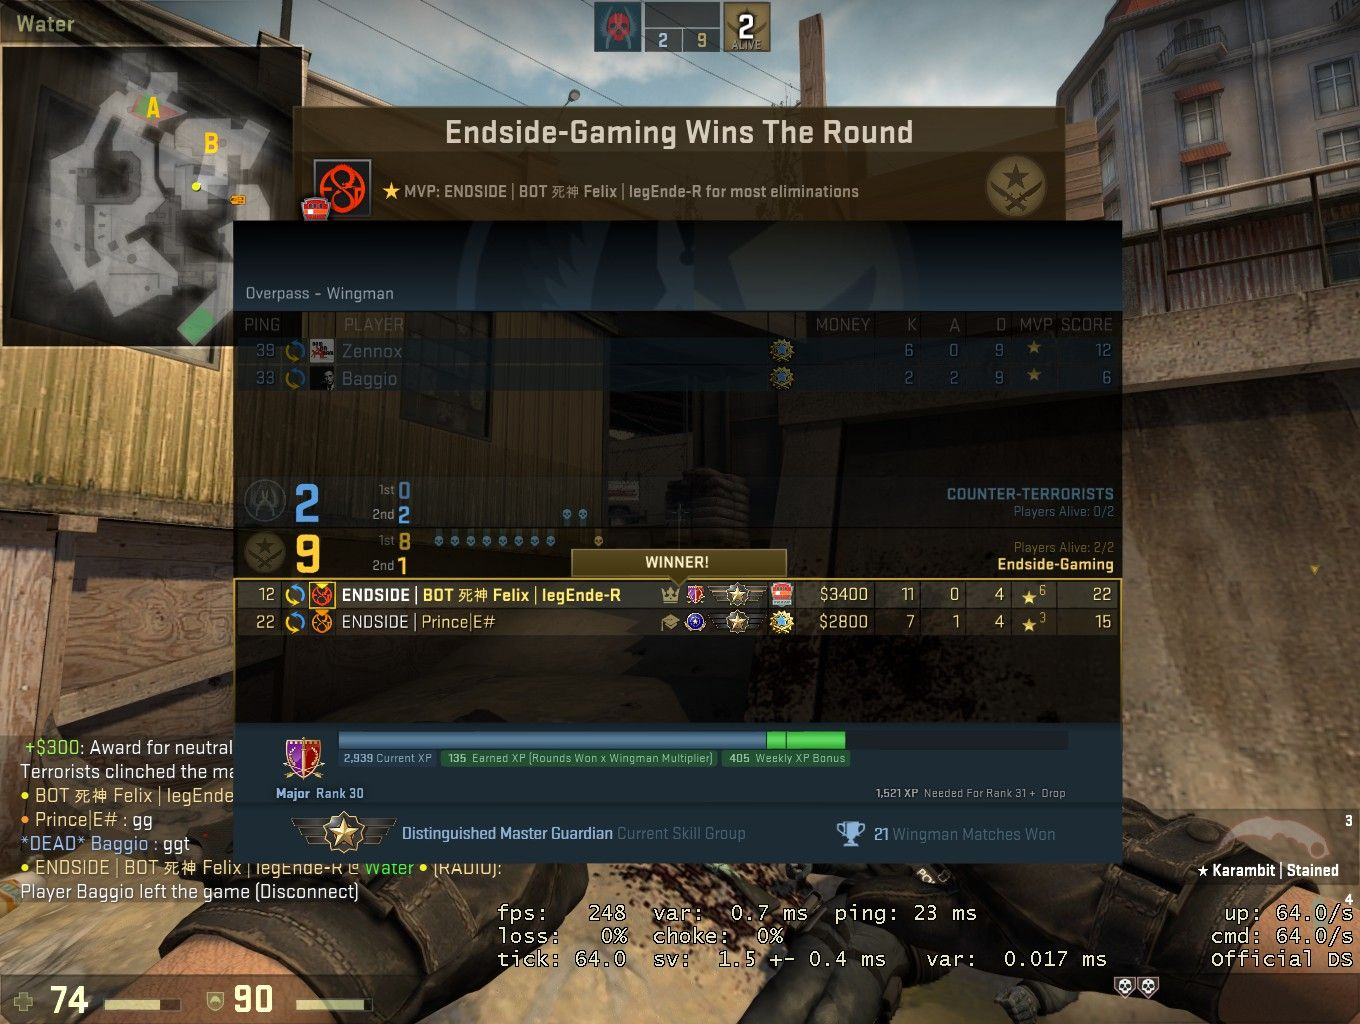 Different wingman dmg symbols on the scoreboard games different wingman dmg symbols on the scoreboard biocorpaavc Image collections